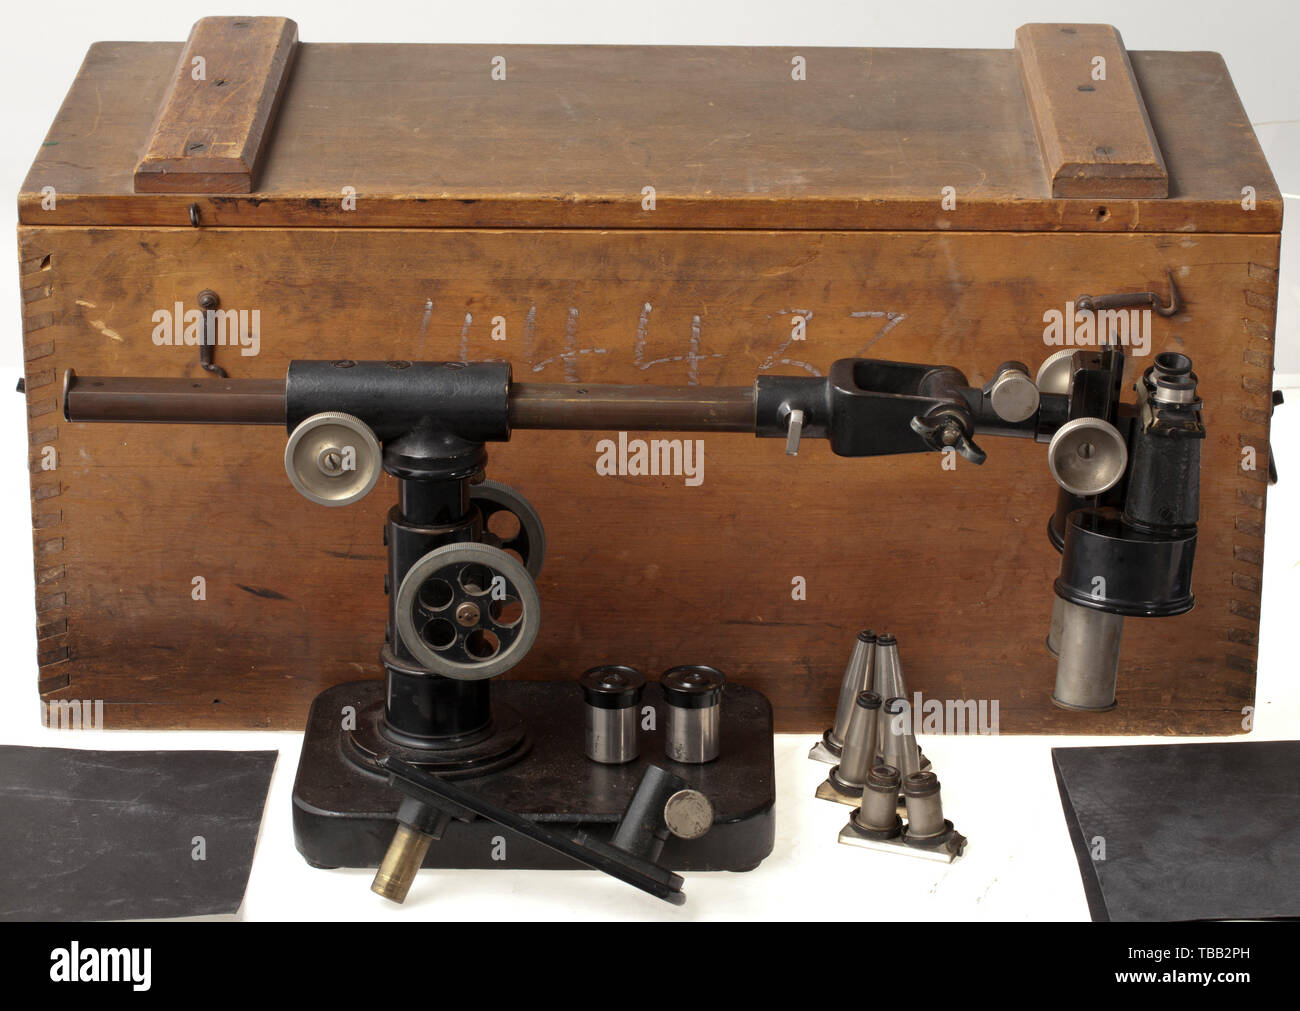 """A special microscope and photo viewer by Zeiss The viewer with the acceptance stamp of the imperial navy, """"Nr. 44433"""" and maker's inscription """"Carl Zeiss, Jena"""". Mounted on a steel panel, multi-adjustable in height and acuity. In corresponding wood transportation box with accessories such as replacement lenses, illegible inventory stamp. Probably used for the analysis of aerial shots. historic, historical, navy, naval forces, military, militaria, branch of service, branches of service, armed forces, armed service, object, objects, stills, clippin, Additional-Rights-Clearance-Info-Not-Available Stock Photo"""